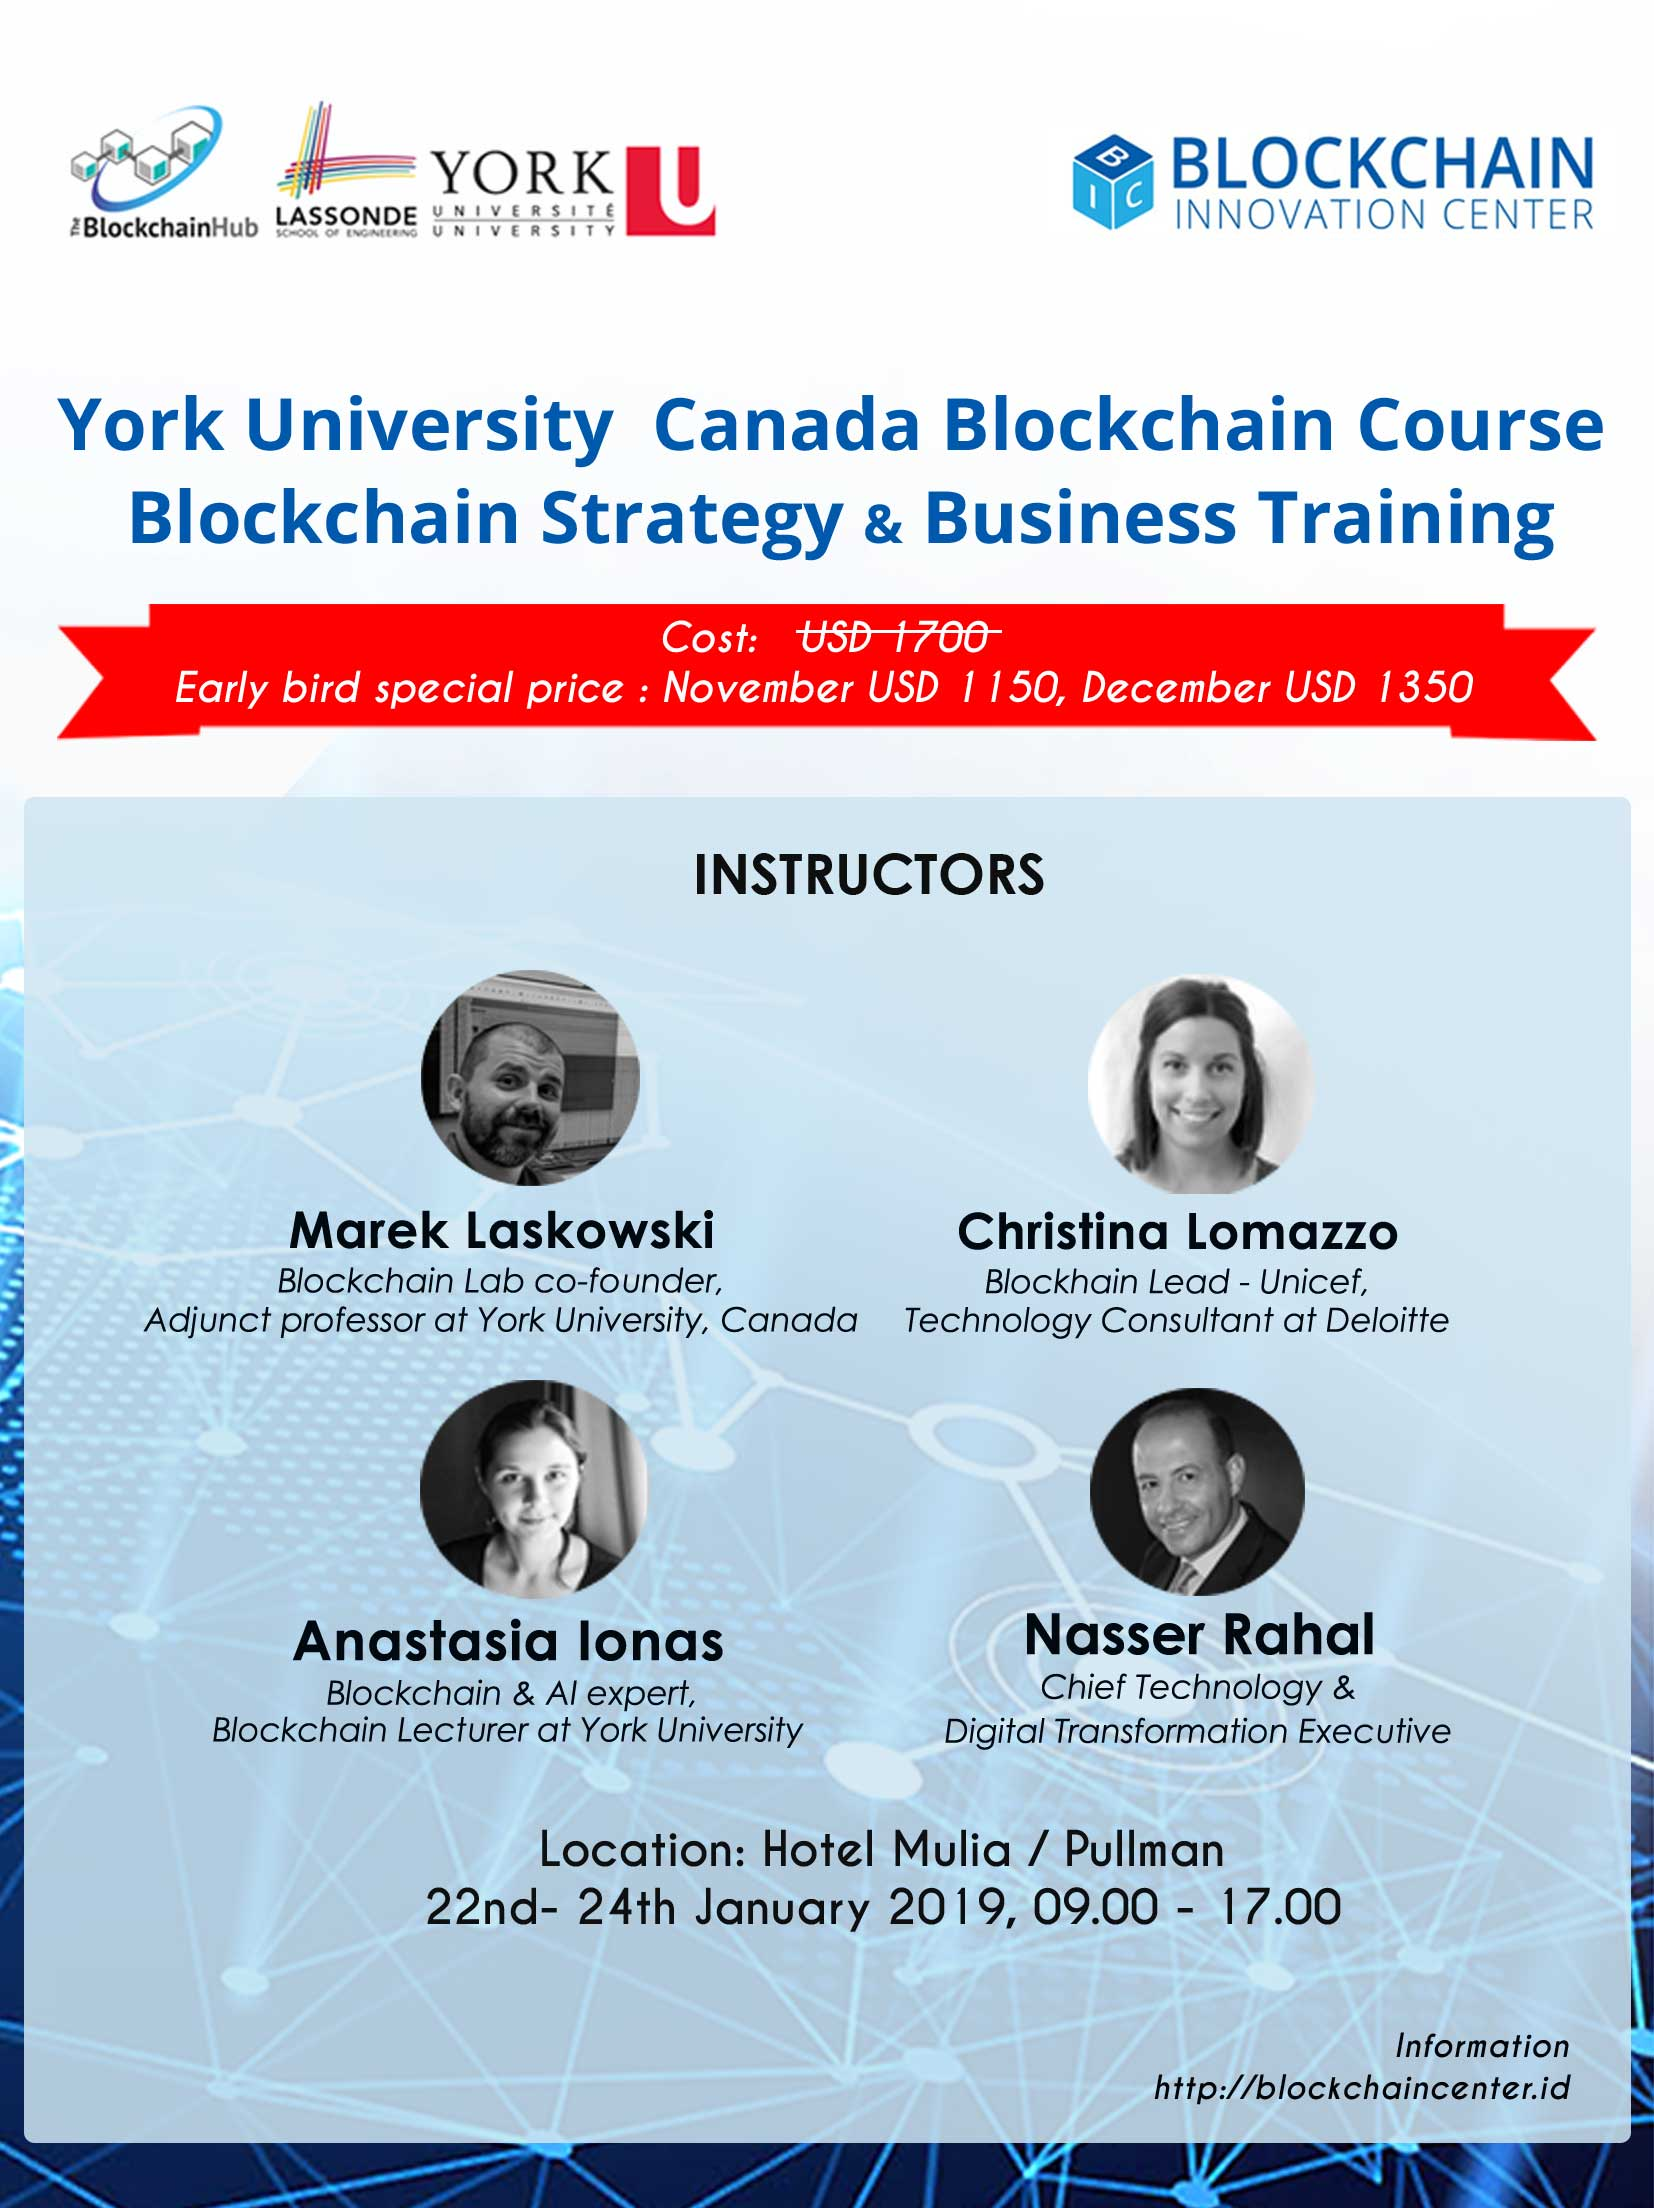 Blockchain Strategy and Business Training